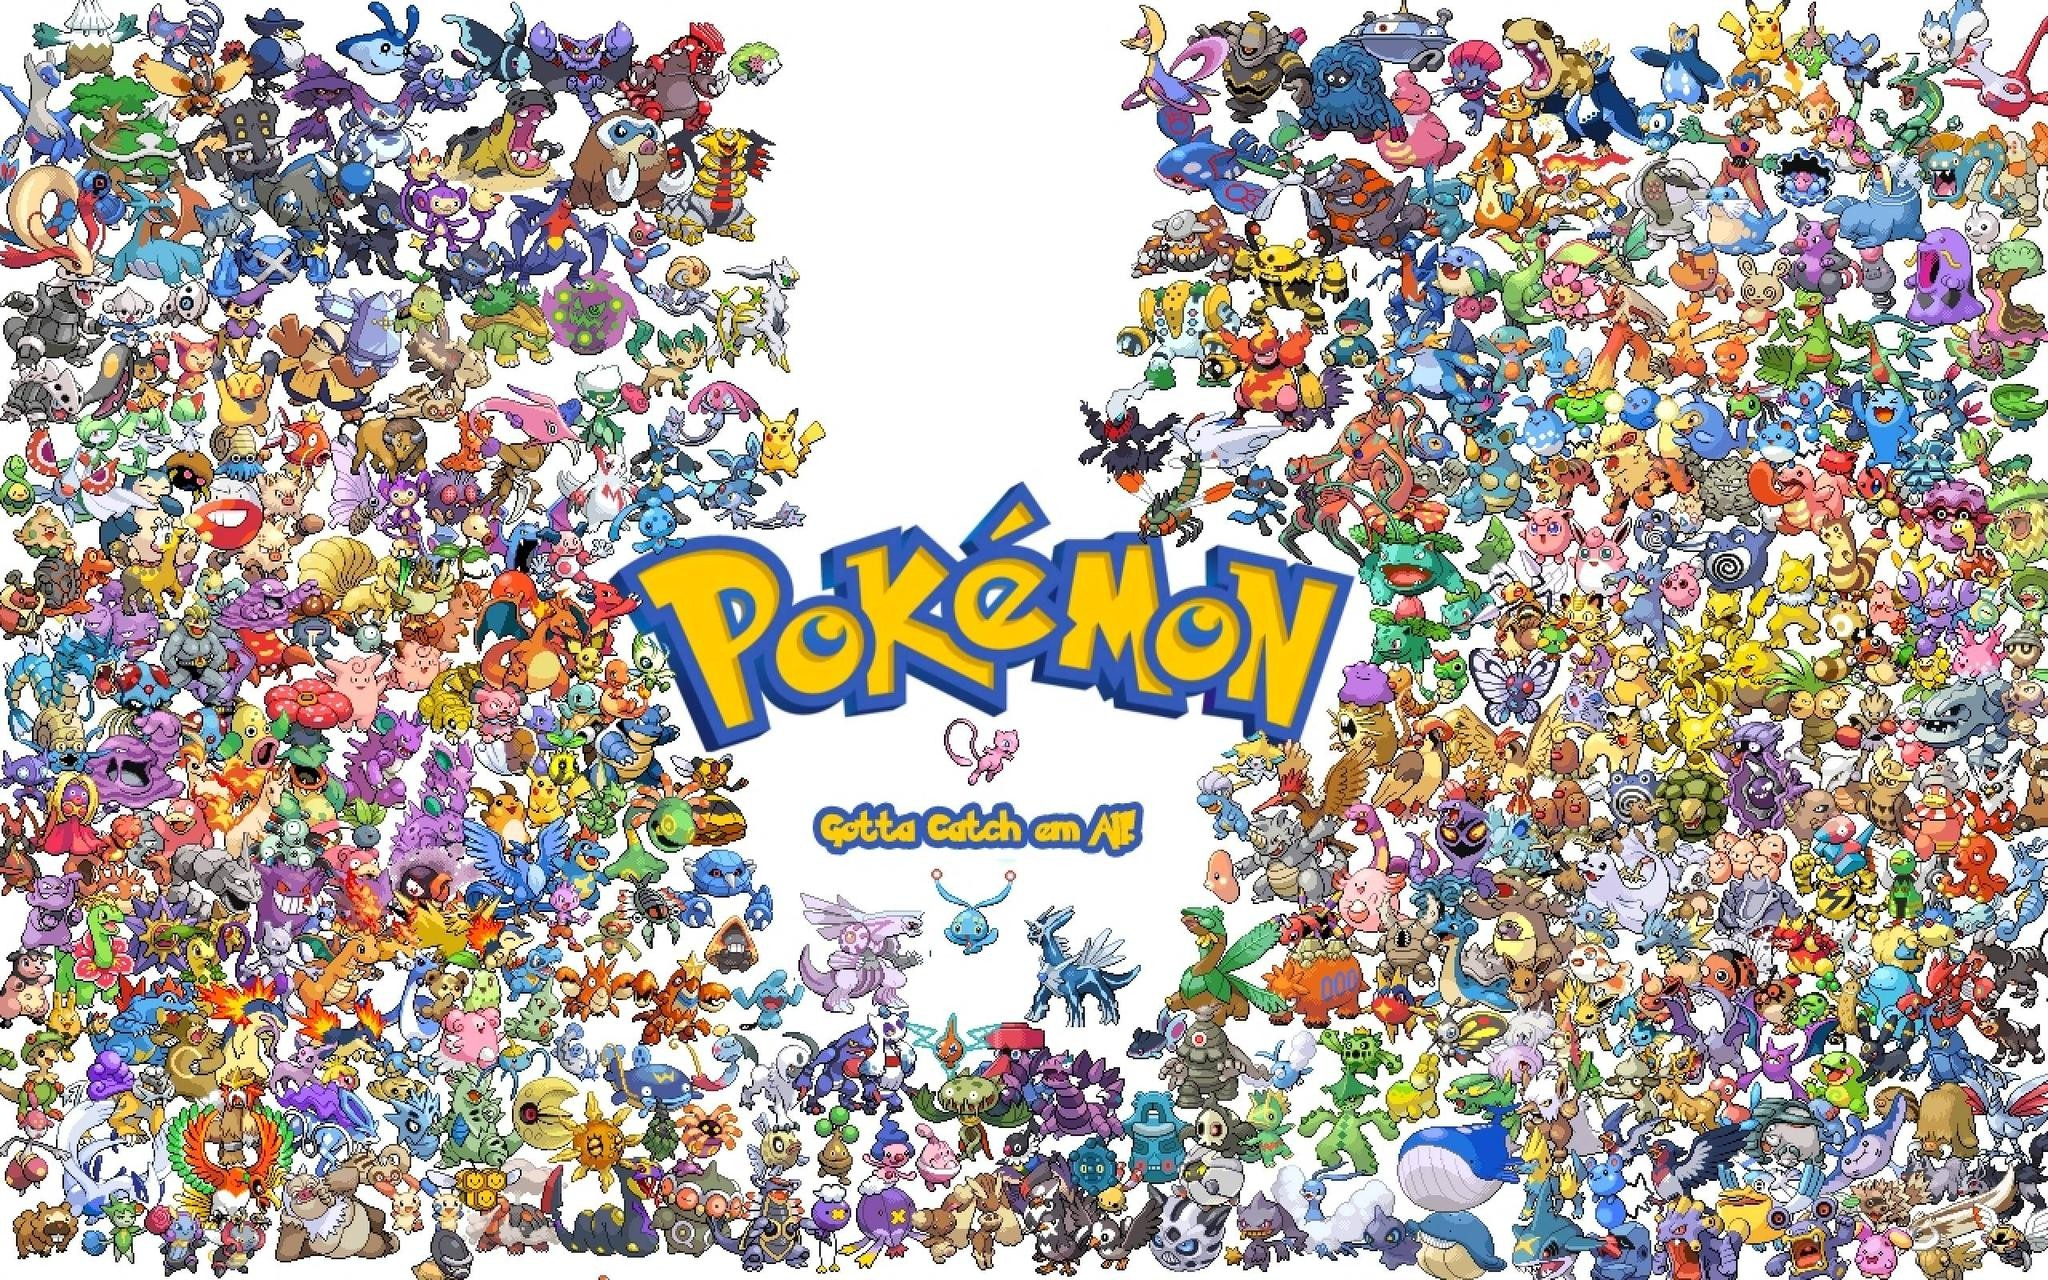 84+ Pokemon Wallpapers ·① Download Free Cool High